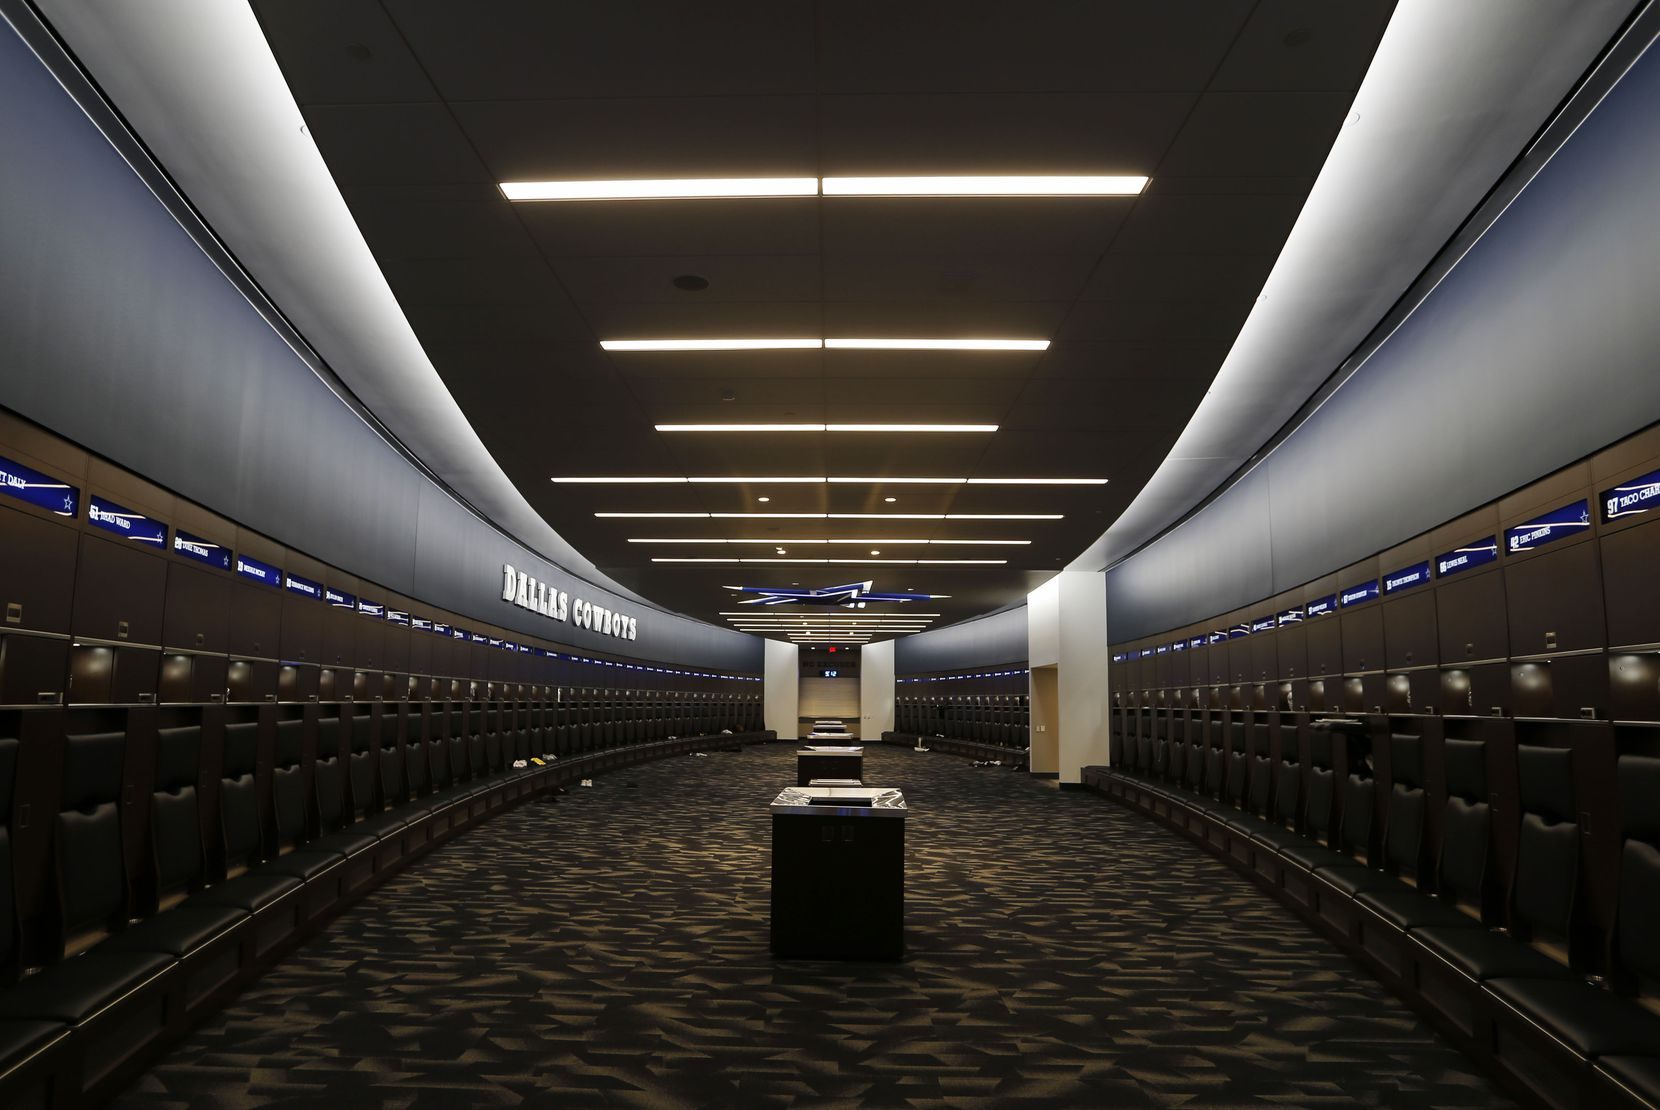 The Dallas Cowboys locker room inside the Dallas Cowboys headquarters at The Star in Frisco on July 17, 2018.